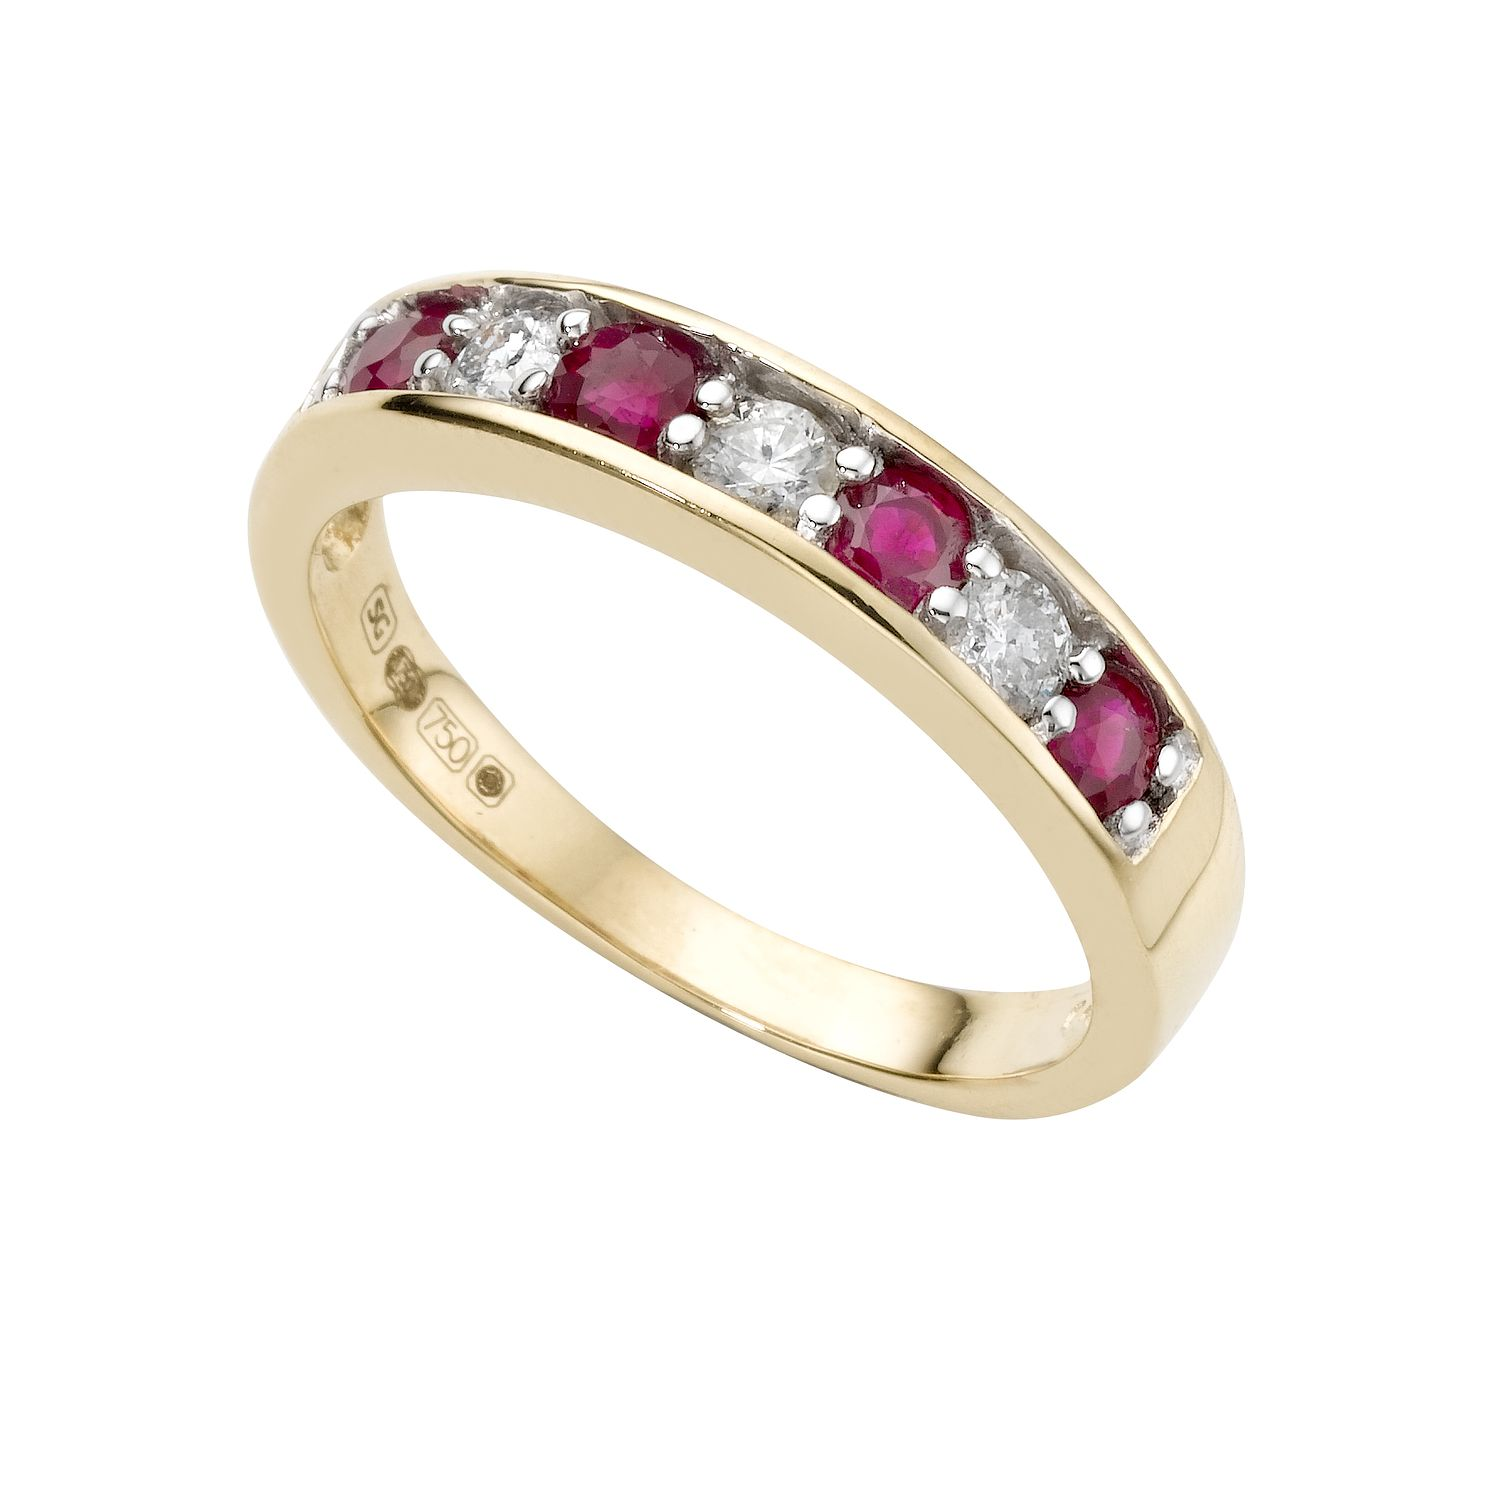 in band c t v gold anniversary bands wedding diamond ruby peoples white jewellers rings w